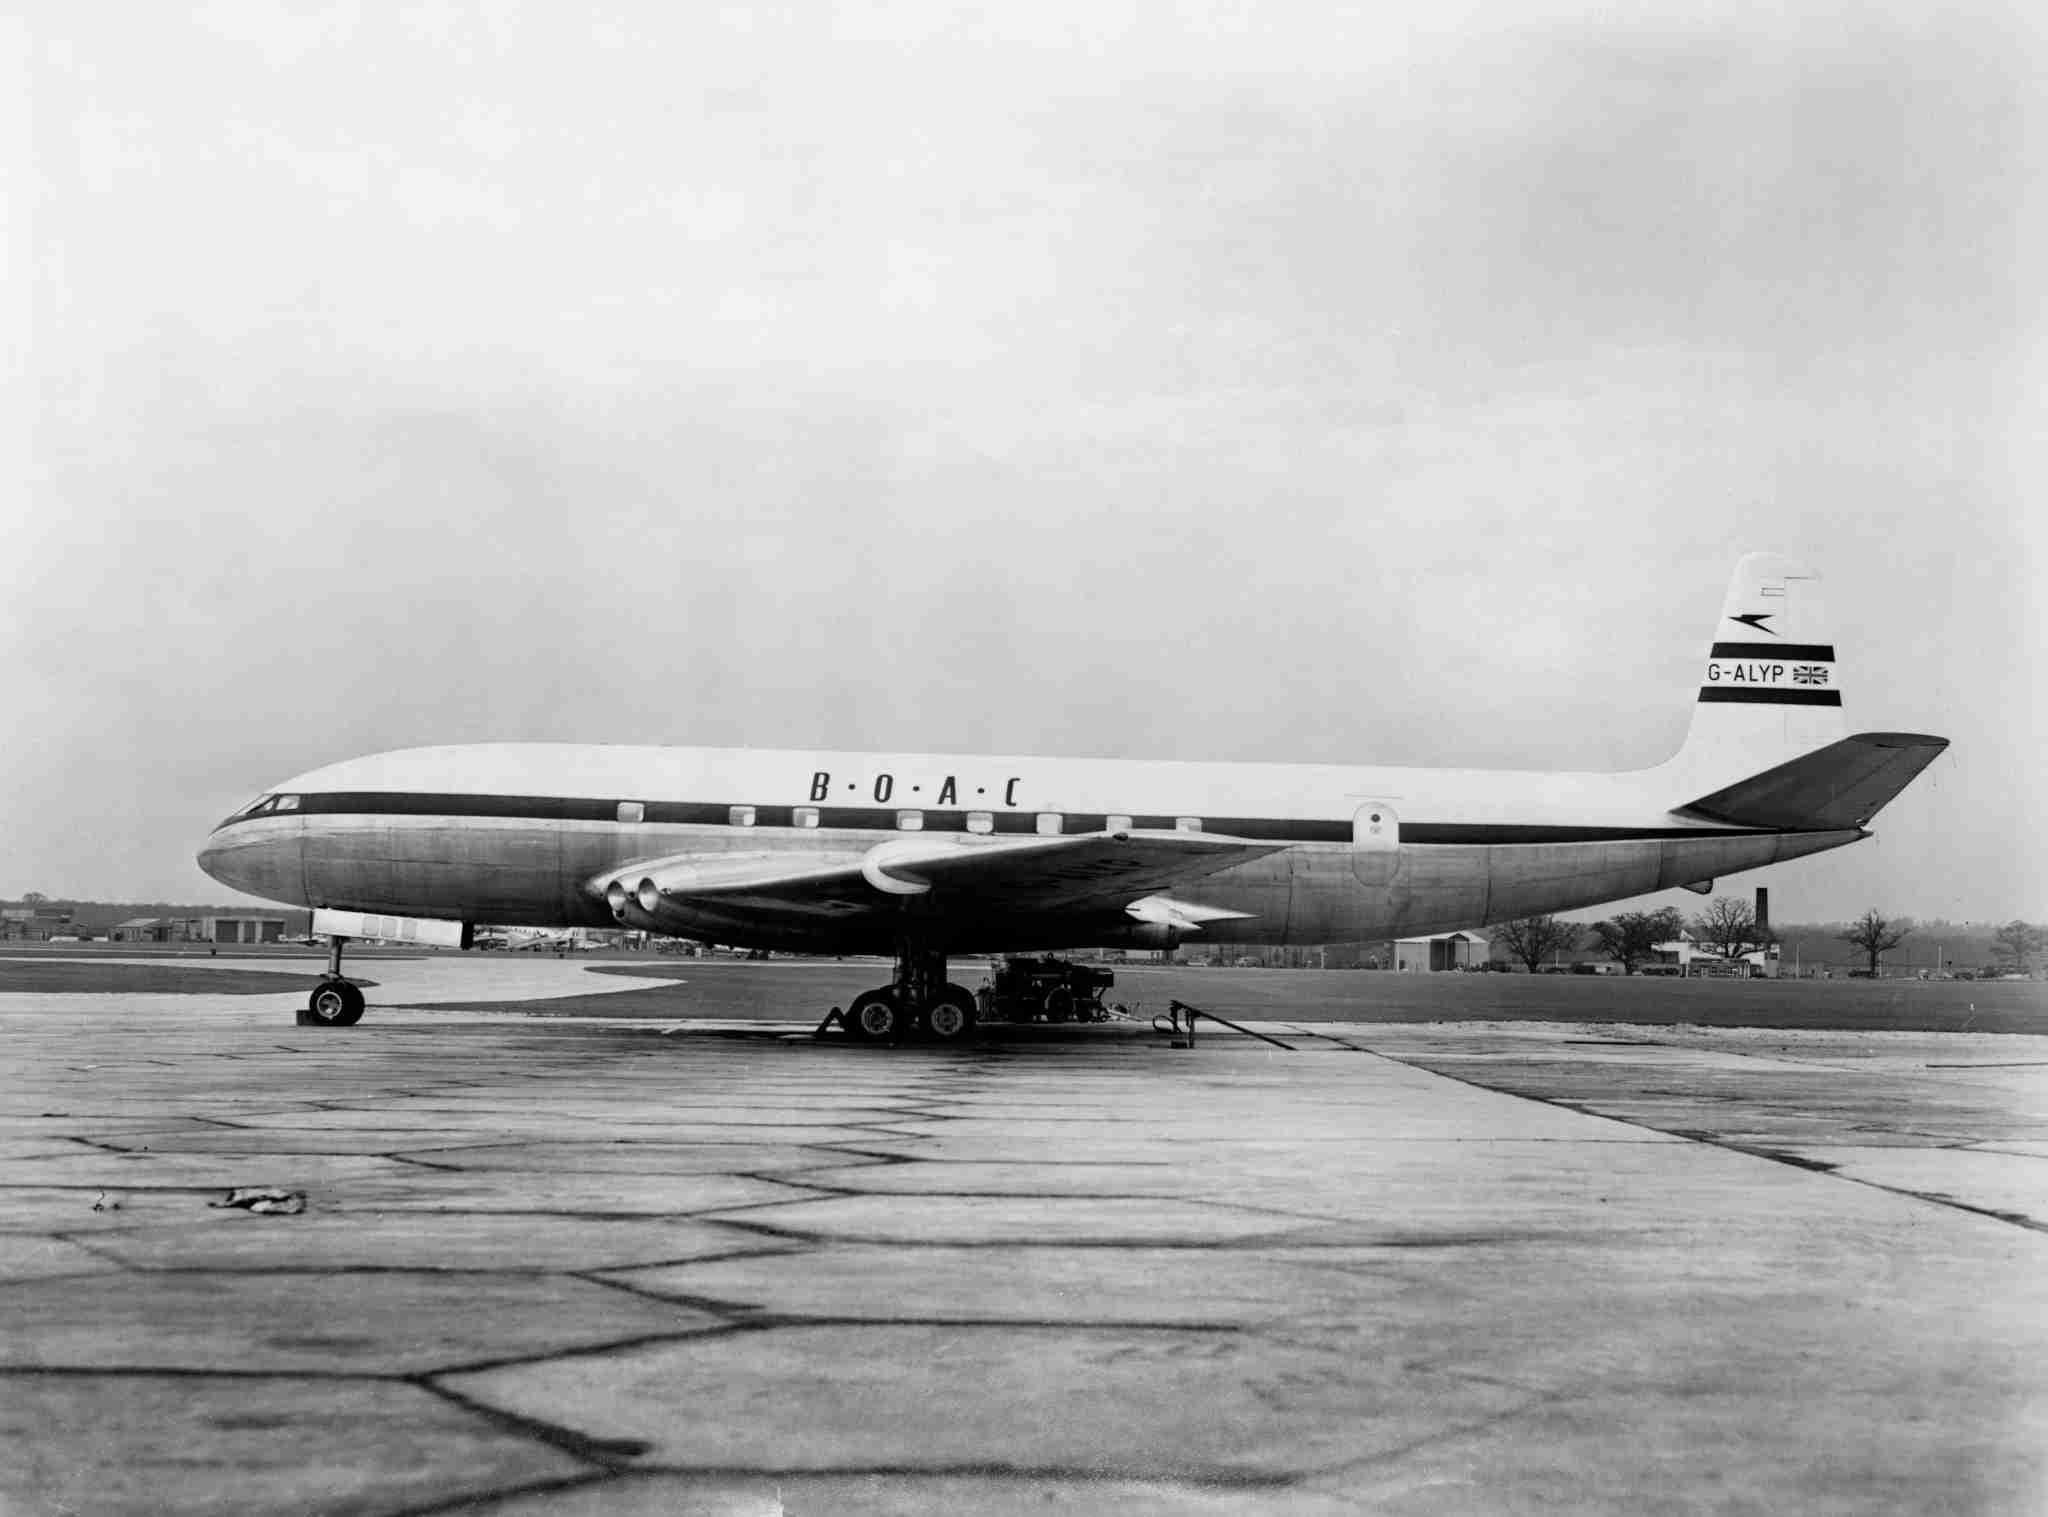 UNITED KINGDOM - NOVEMBER 15: De Havilland 106 Comet 1 G-ALYP of BOAC, 19 De Havilland 106 Comet 1 G-ALYP of BOAC, 1952. At Hatfield. (Photo by Science & Society Picture Library/SSPL/Getty Images)